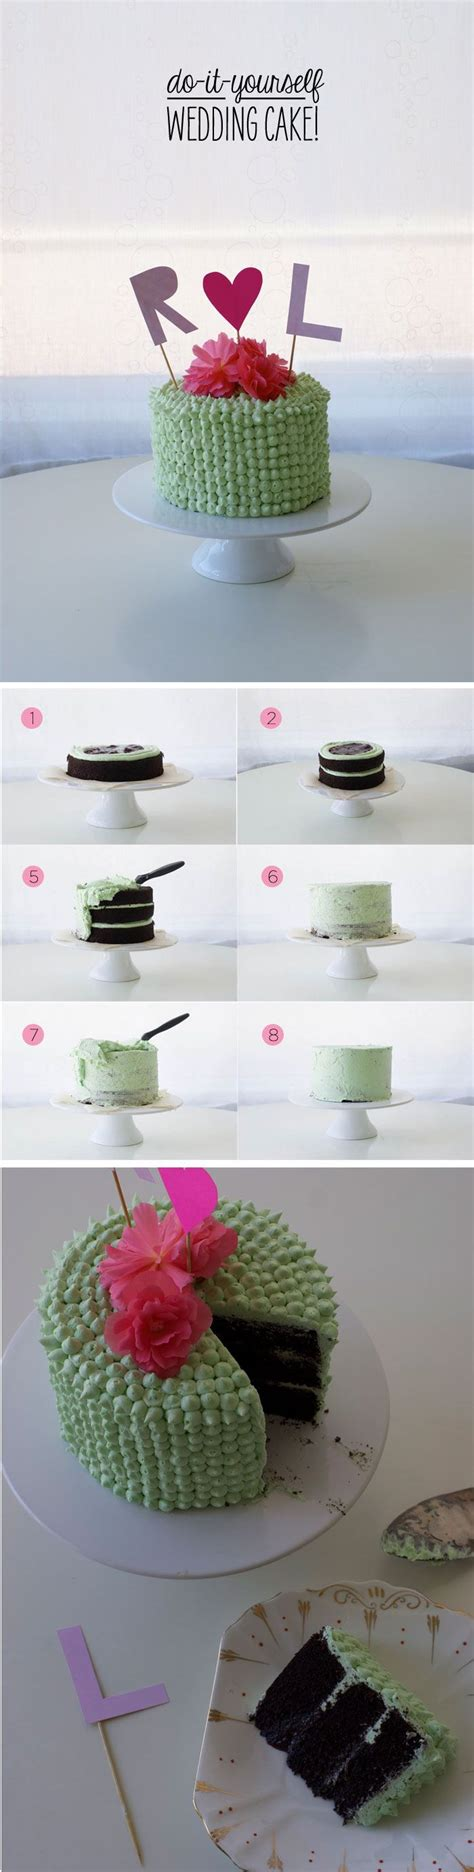 do it yourself wedding cake decorating do it yourself wedding cake make your best friends or even your own wedding cake with this